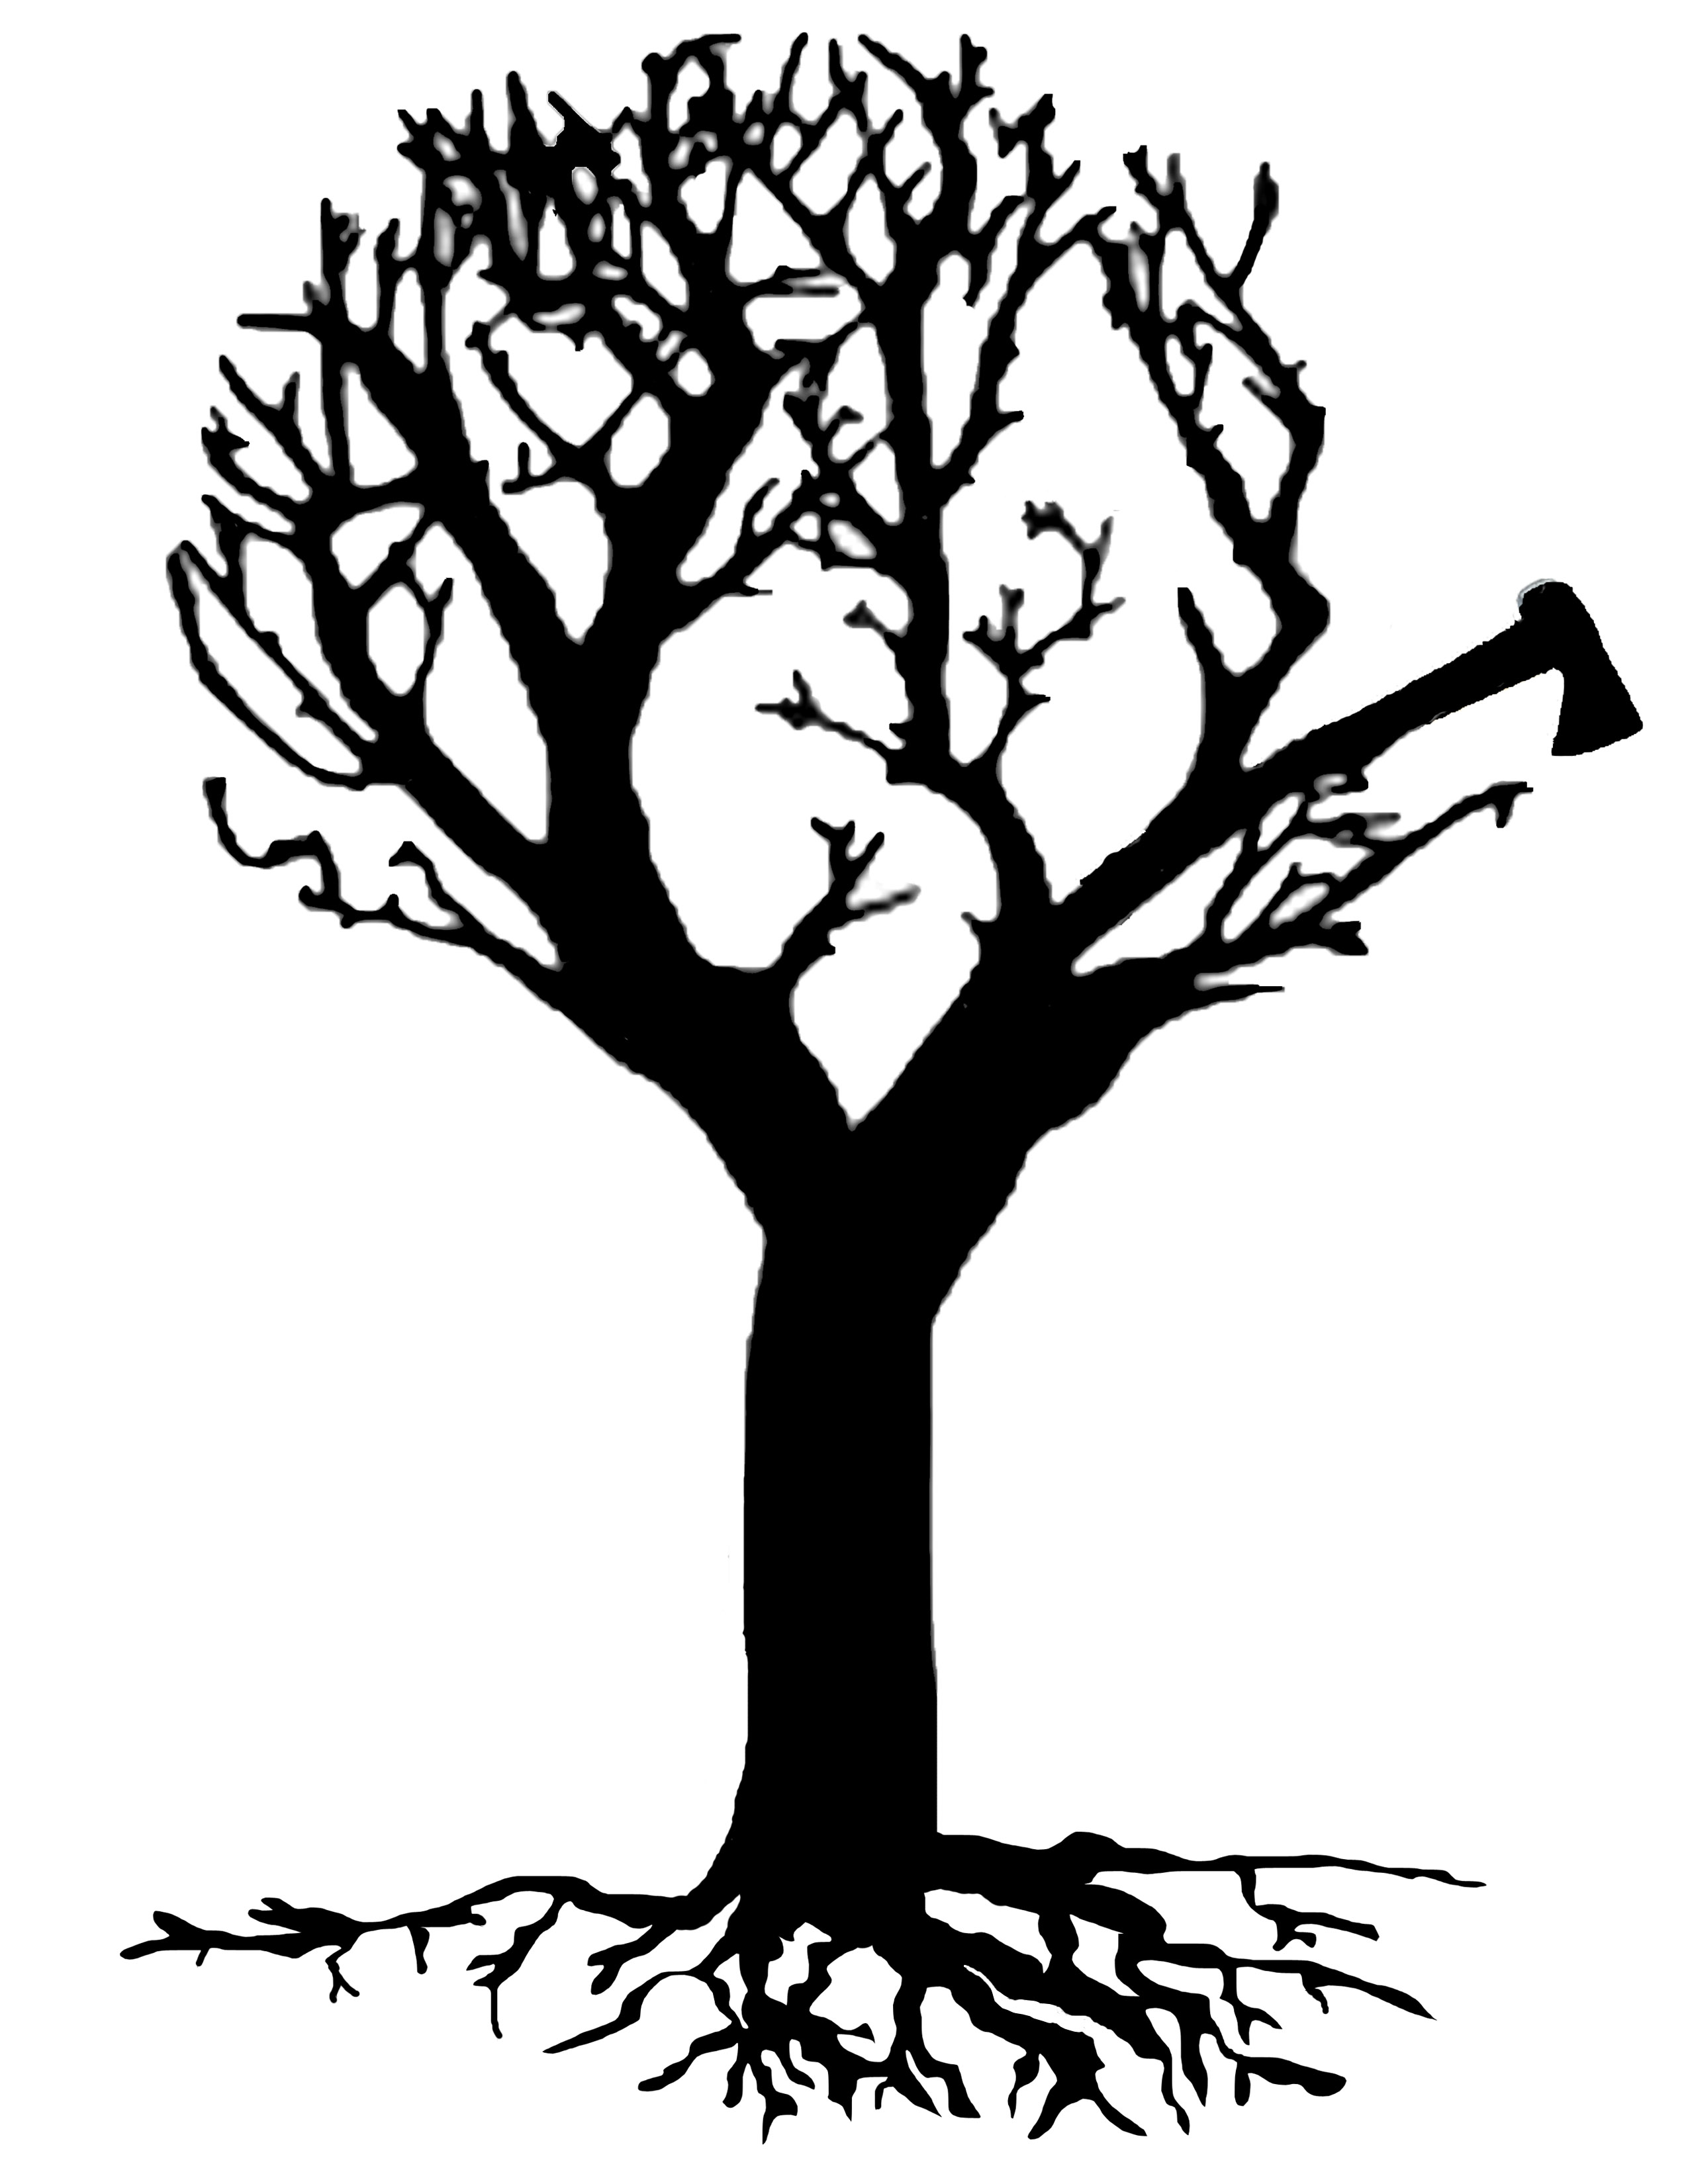 Acacia Tree Silhouette Clipart